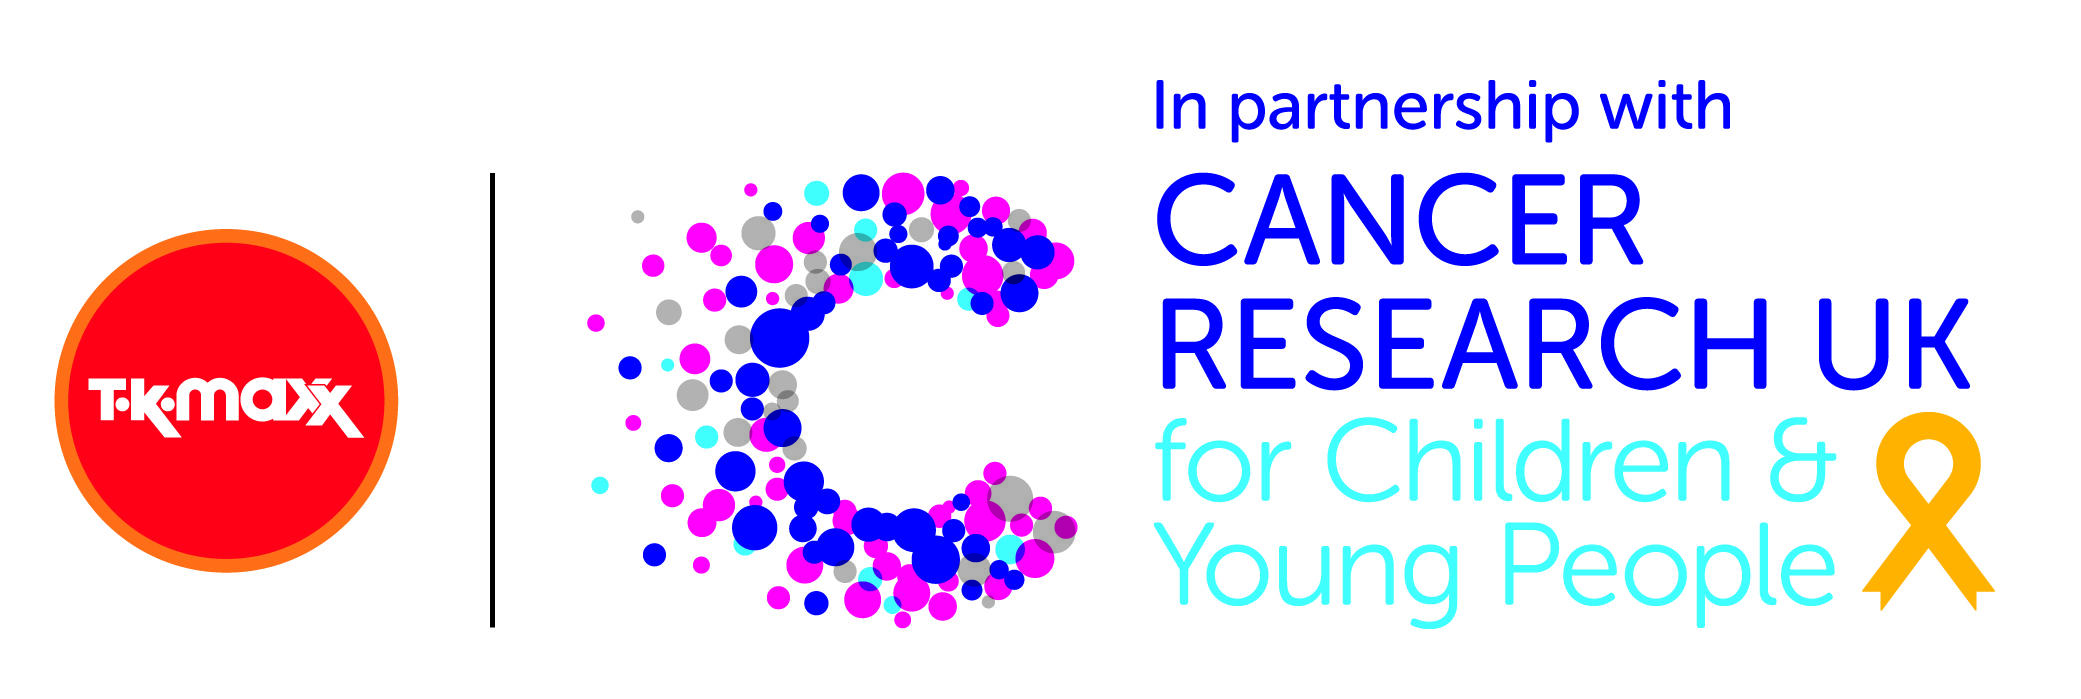 TK Maxx supporting Cancer Research UK for Children & Young People